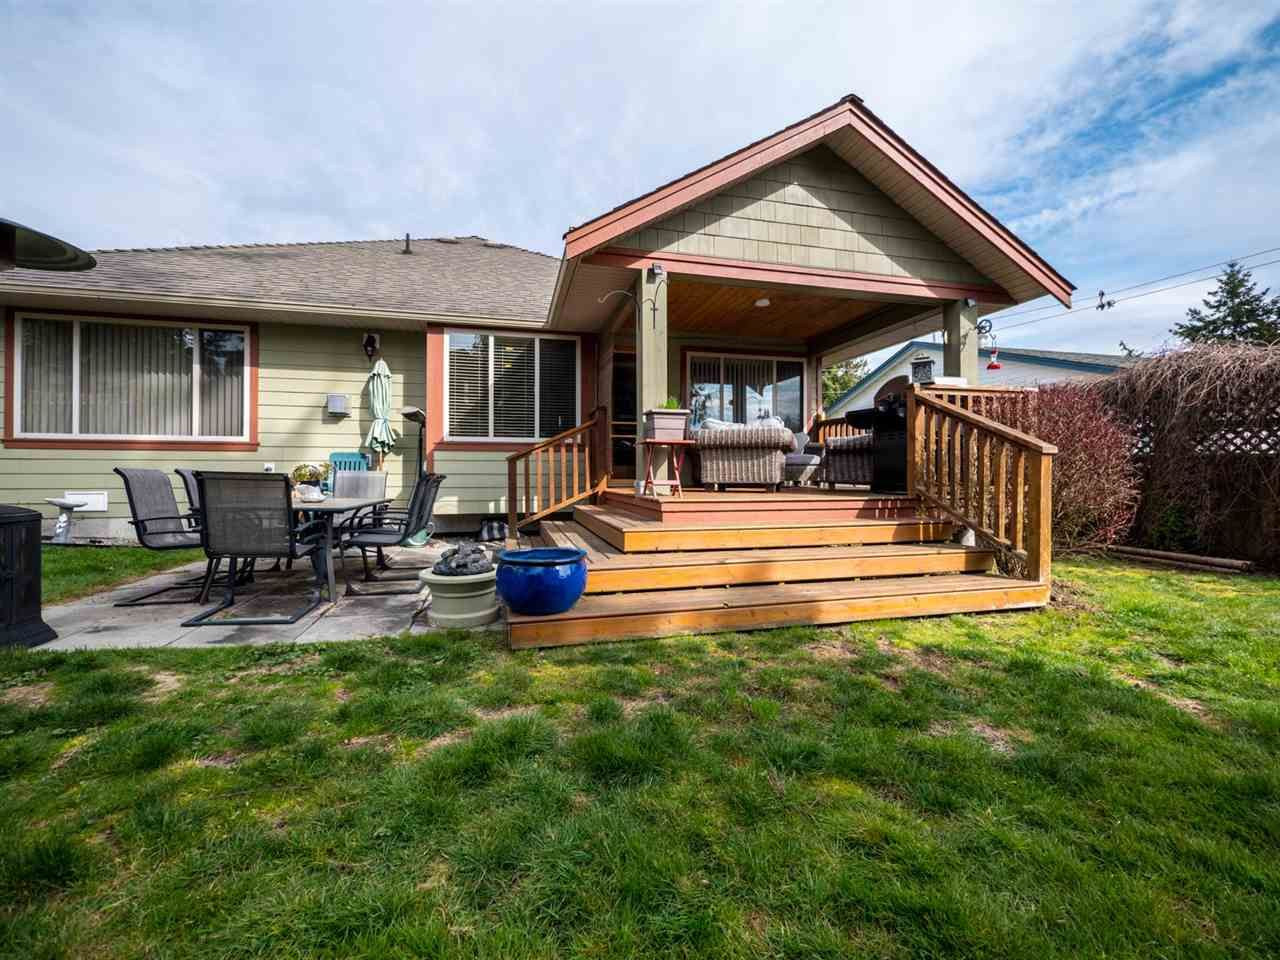 Photo 16: Photos: 6335 PICADILLY Place in Sechelt: Sechelt District House for sale (Sunshine Coast)  : MLS®# R2248834